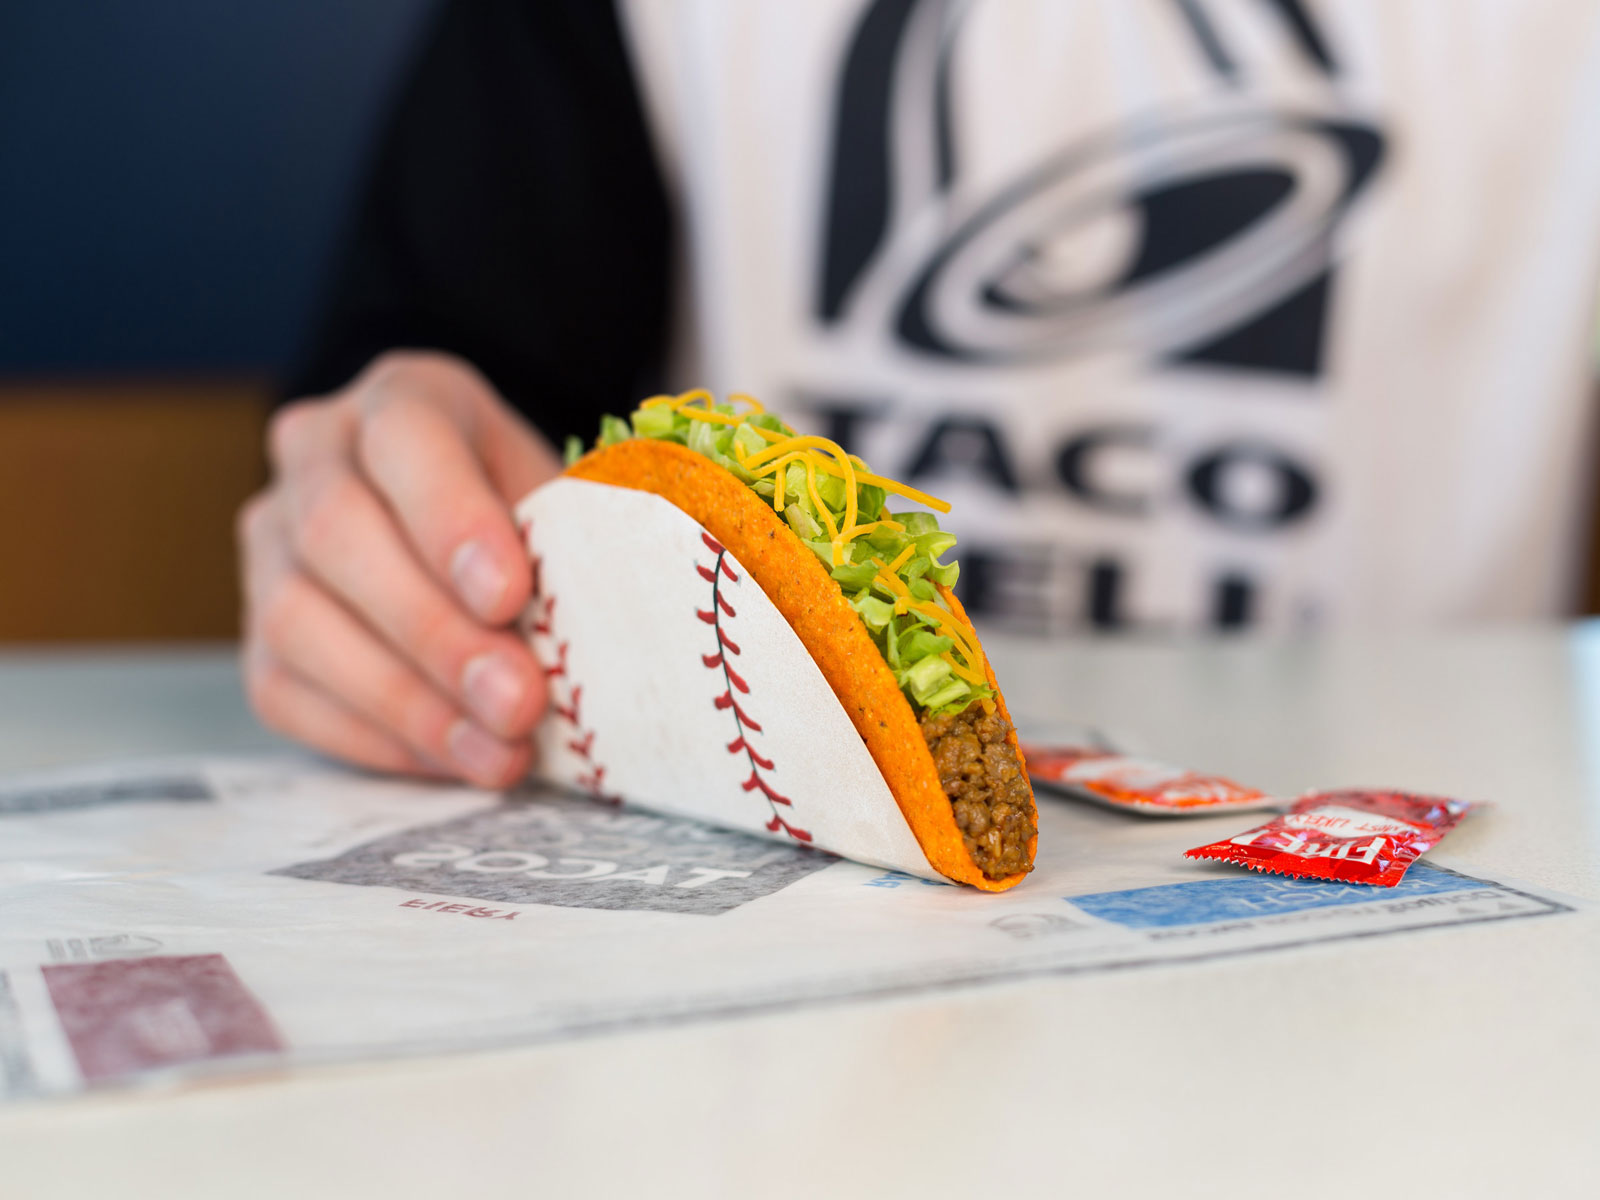 Ready to steal a taco?